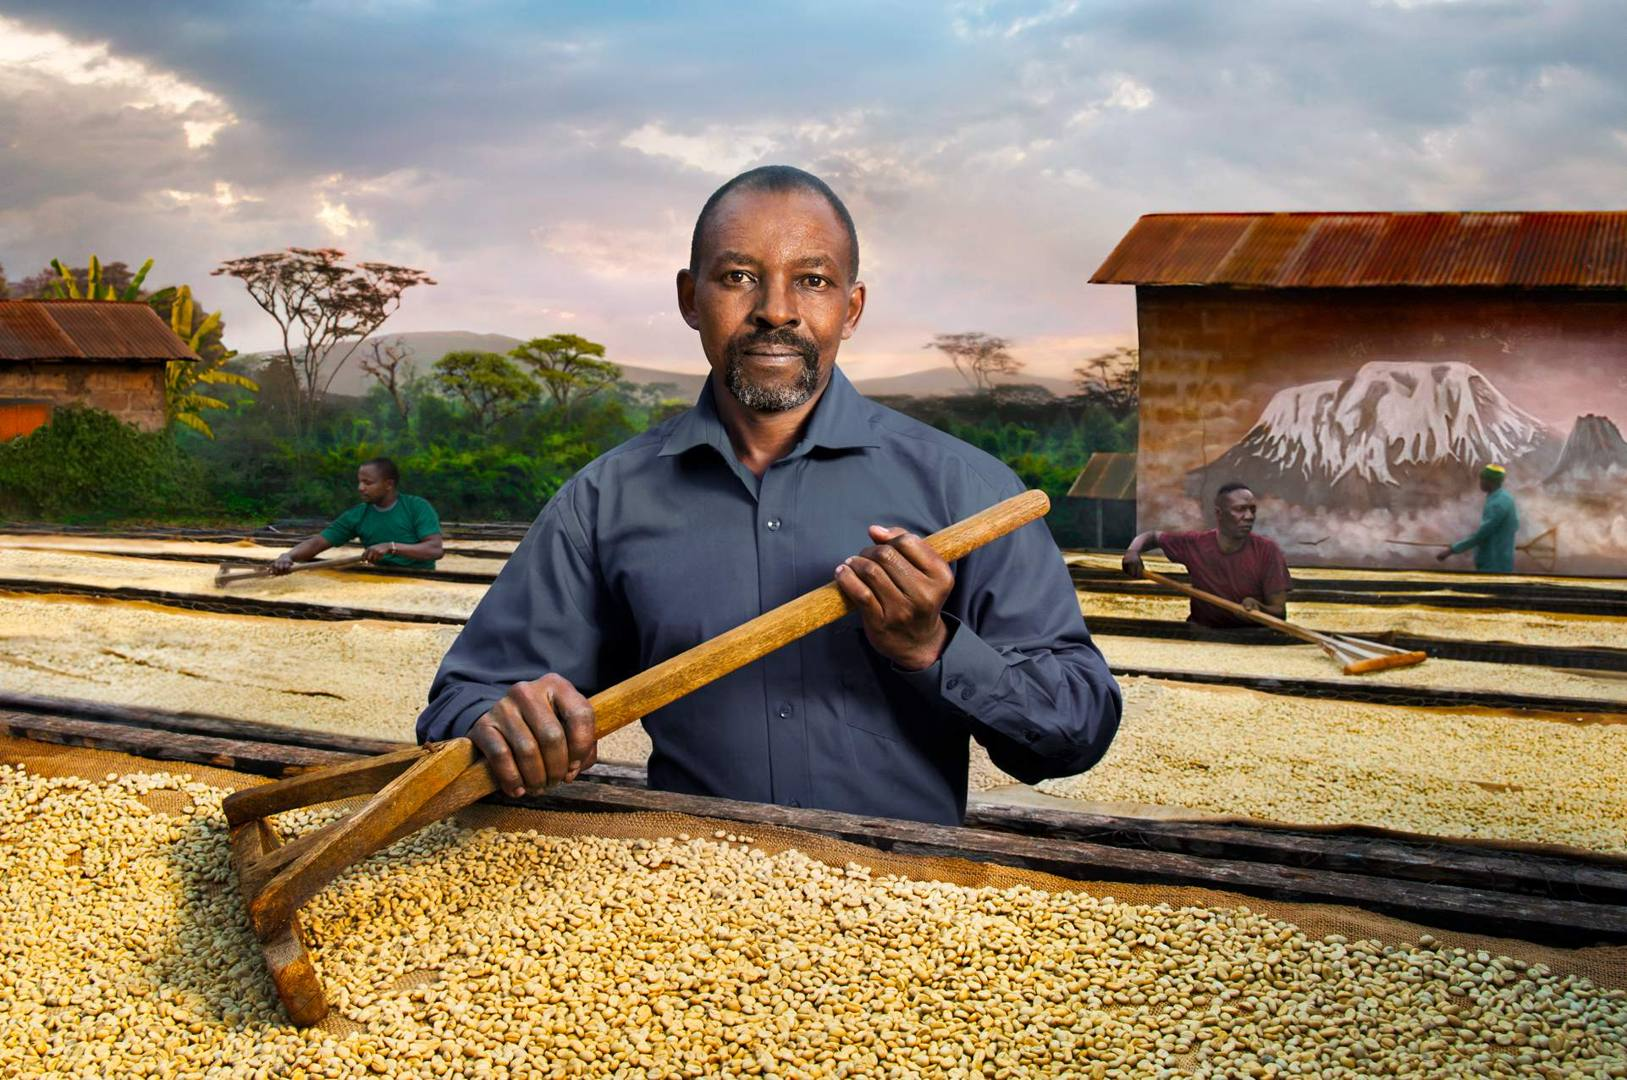 'Kirua calls Tierra' - Father Peter Kilasara, a Tanzanian missionary in the Congregation of the Holy Spirit, he has worked in various countries and is at present the determined leader of the Kirua Children Association in Tanzania. He is surrounded by an expanse of coffee beans drying in the sun, as a defender and protector of his tradition in Tanzania